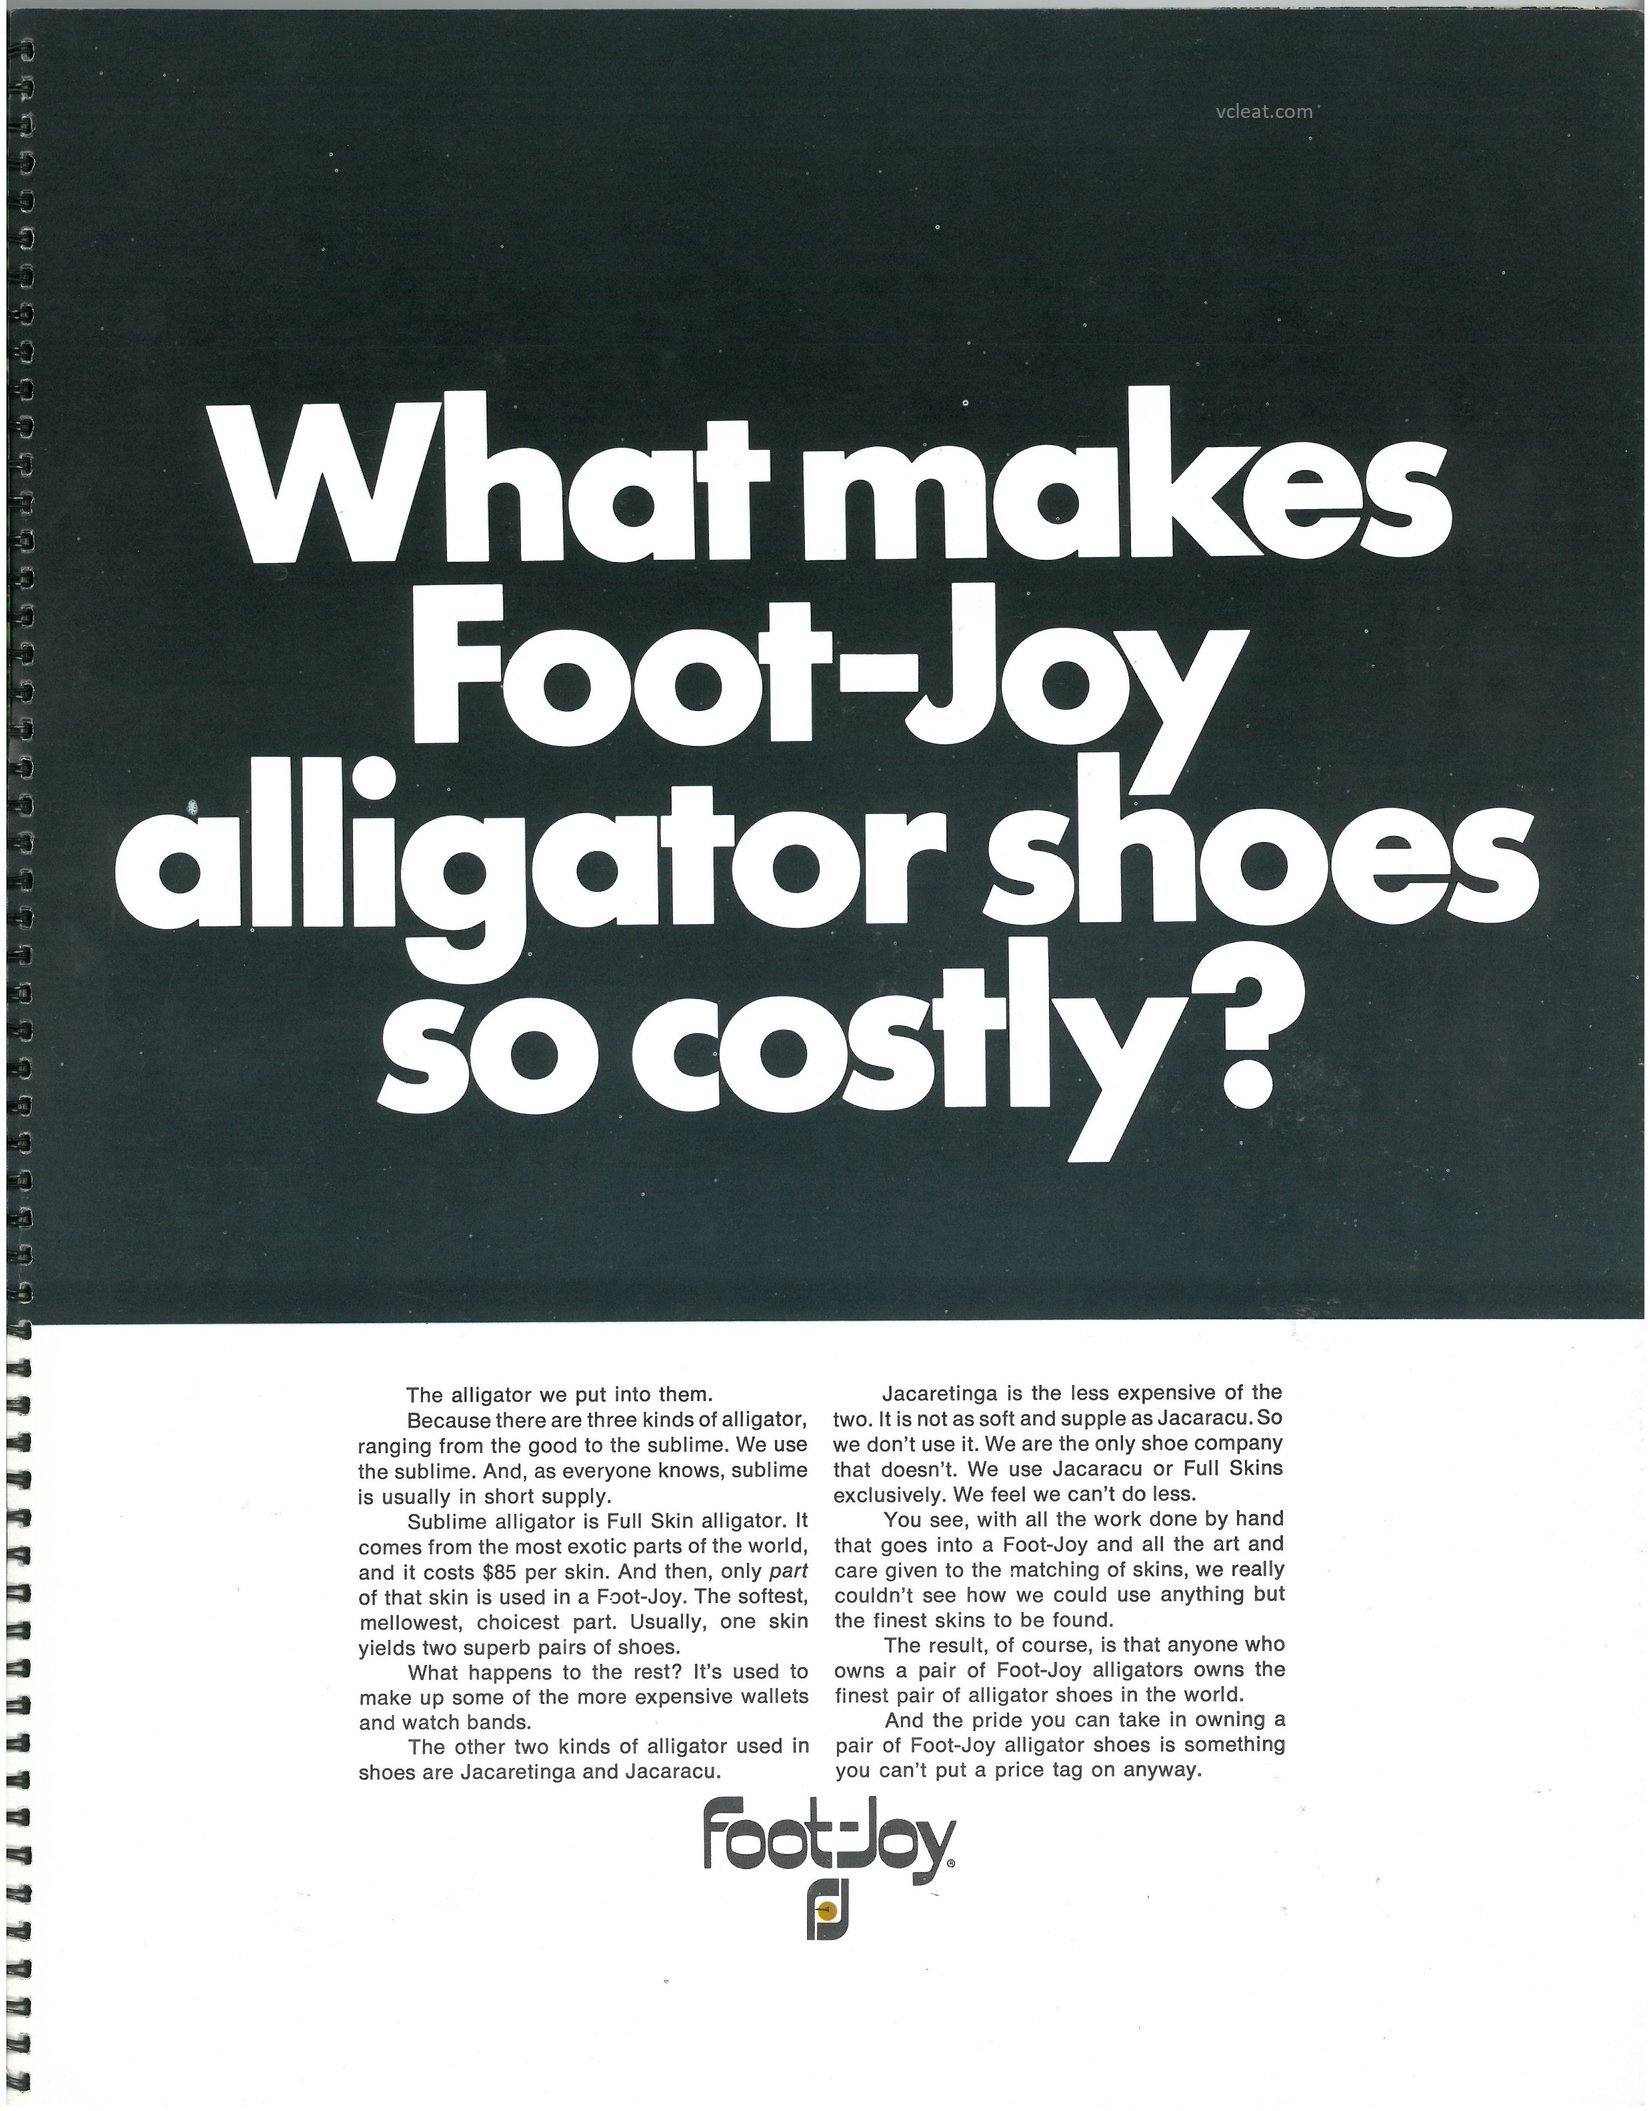 FootJoy Alligator